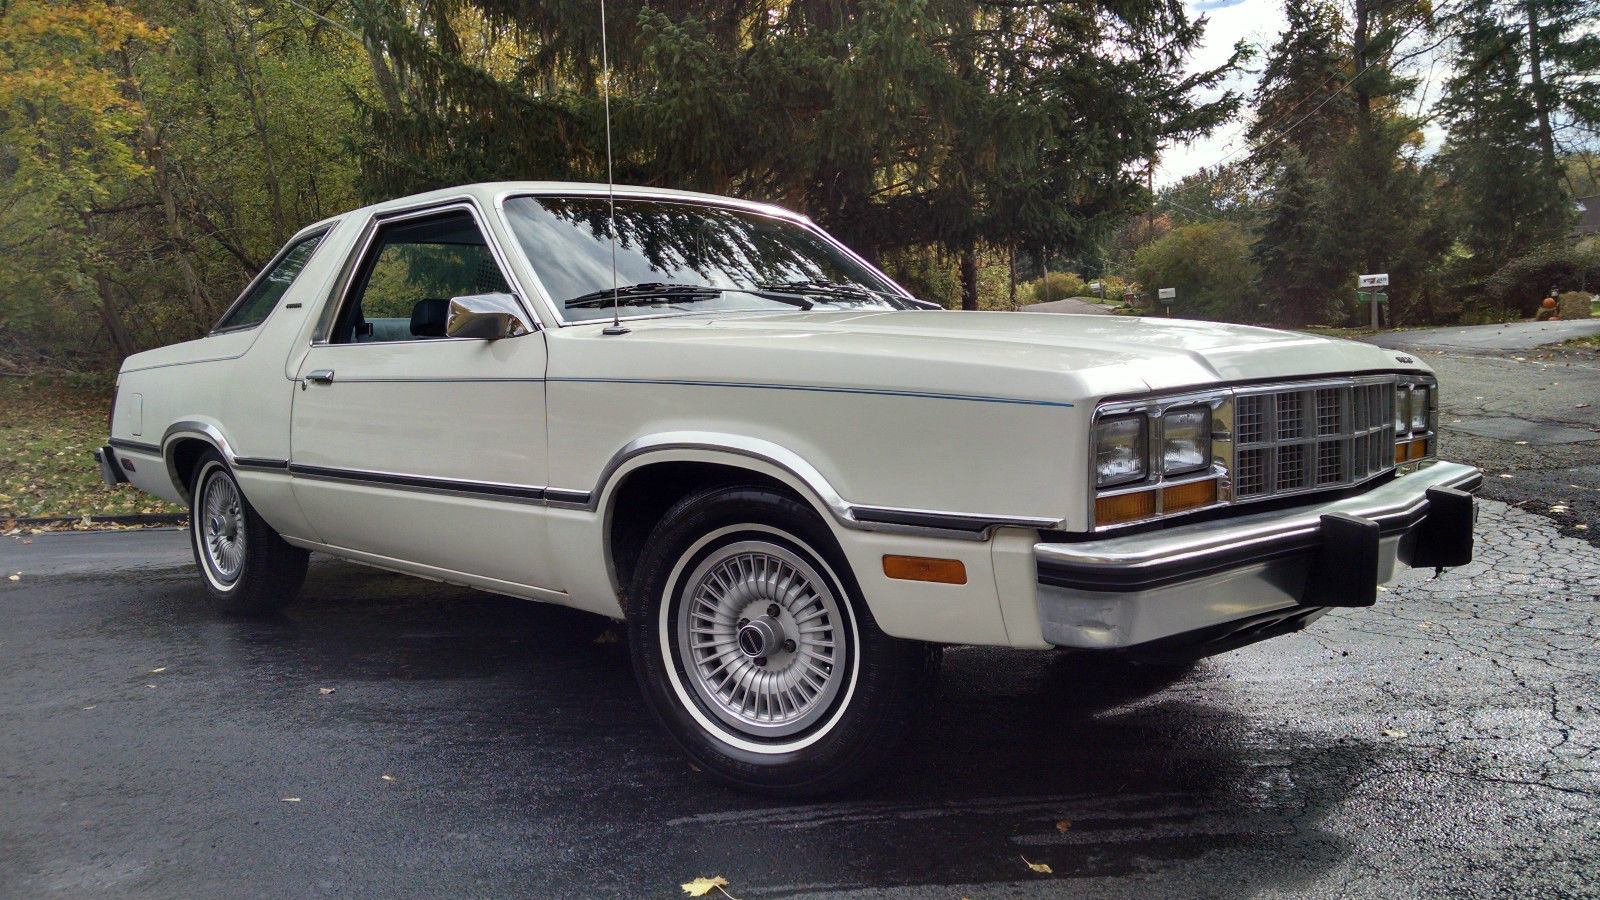 82fair in addition Time Capsule 1977 Ford Xc Fairmont Coupe additionally Rm793328896 moreover 3 in addition 82fair. on ford fairmont